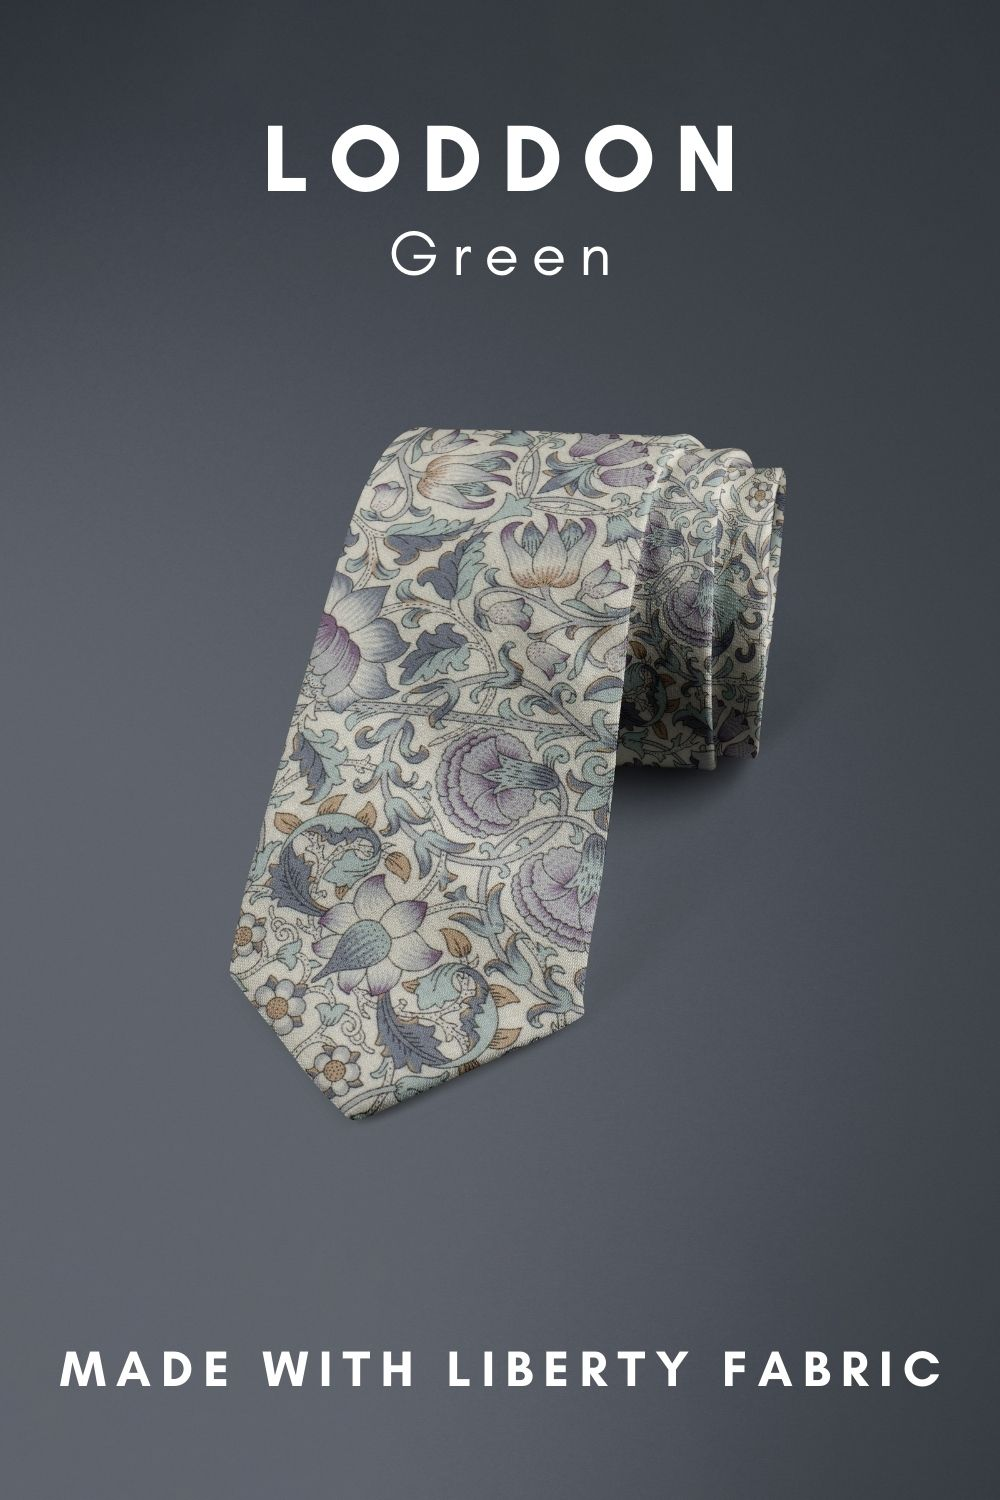 Loddon Green Liberty of London cotton fabric floral tie